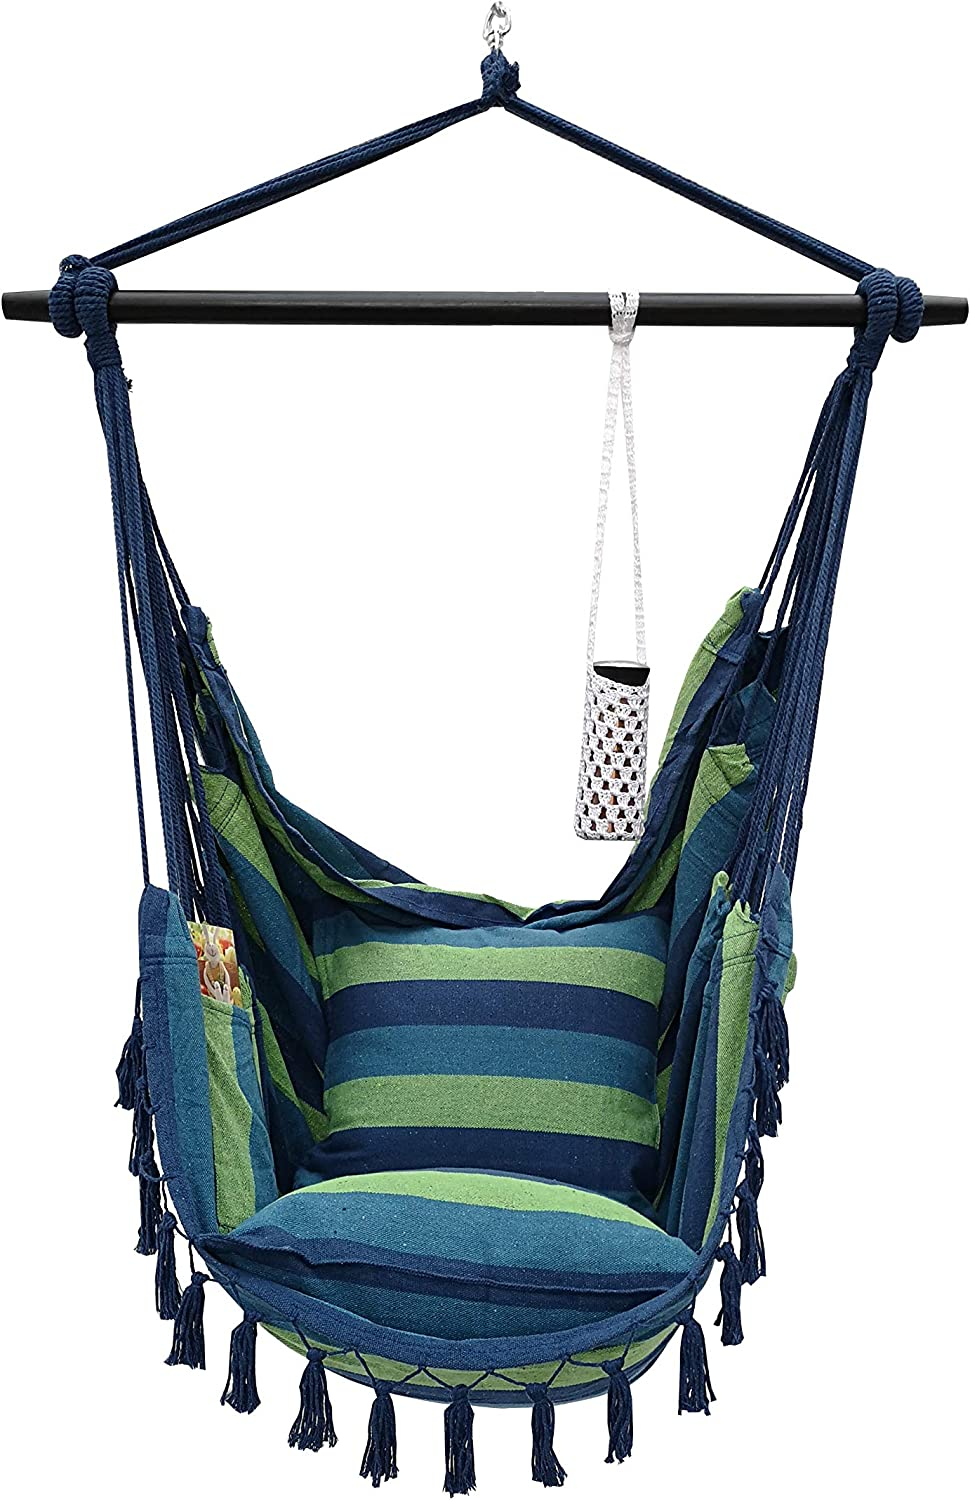 Project One Hanging Rope Hammock Chair, Hanging Rope Swing Seat with 2 Pillows, Carrying Bag, and Hardware Kit Perfect for Outdoor/Indoor Yard Deck Patio and Garden, 300 LBS Cap (Blue Green Stripe)